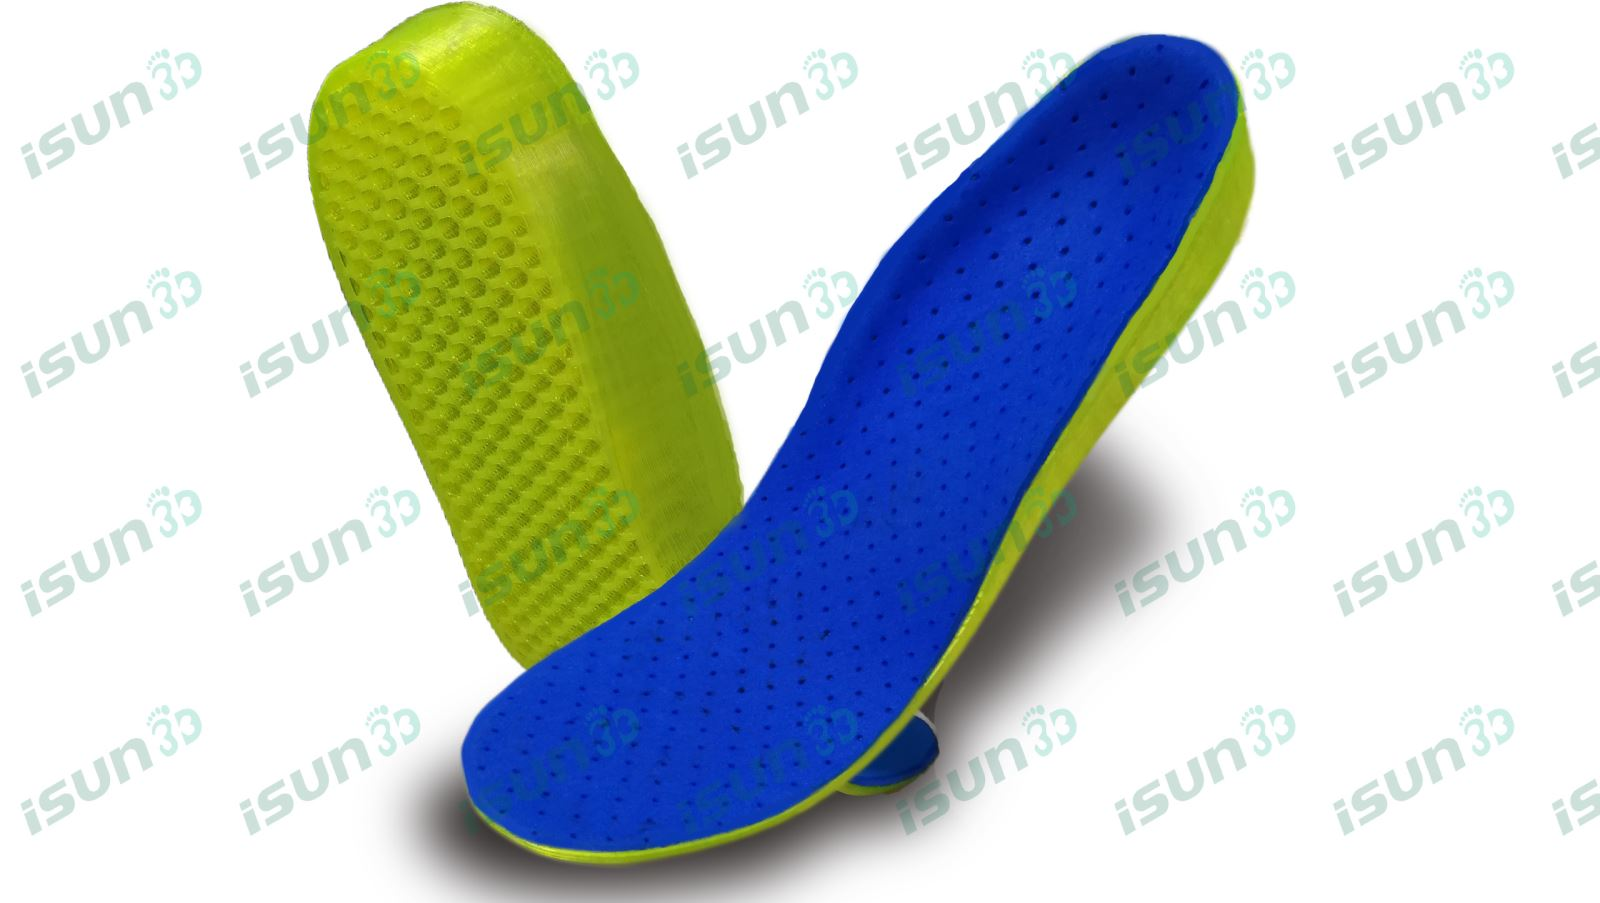 iSUN3D customized 3D Printing insole system